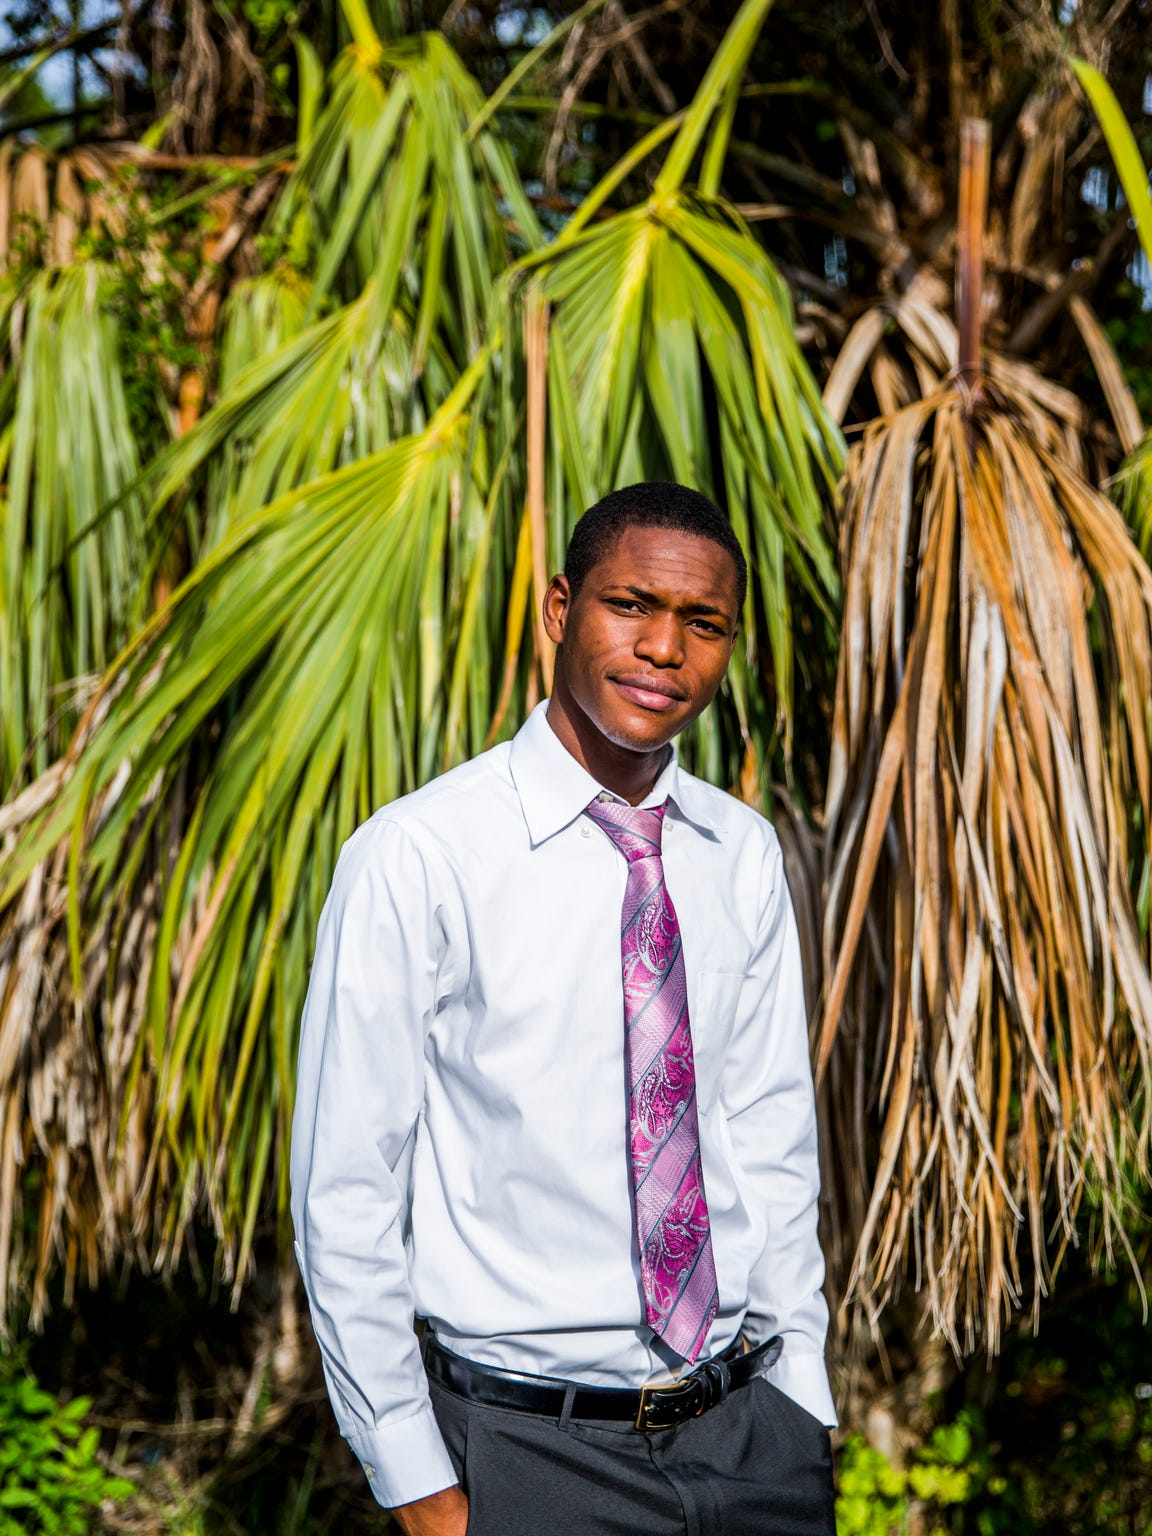 Nehemy Antoine, 19, outside of his East Naples home on Sunday, June 17, 2018. Antoine came to the United States from Haiti with his father when he was 17 years old. He was denied admission to Golden Gate High School when he tried to enroll because he was told that he was too old to finish in a timely manner. Antoine was directed instead to a minimalist GED program run by the district.